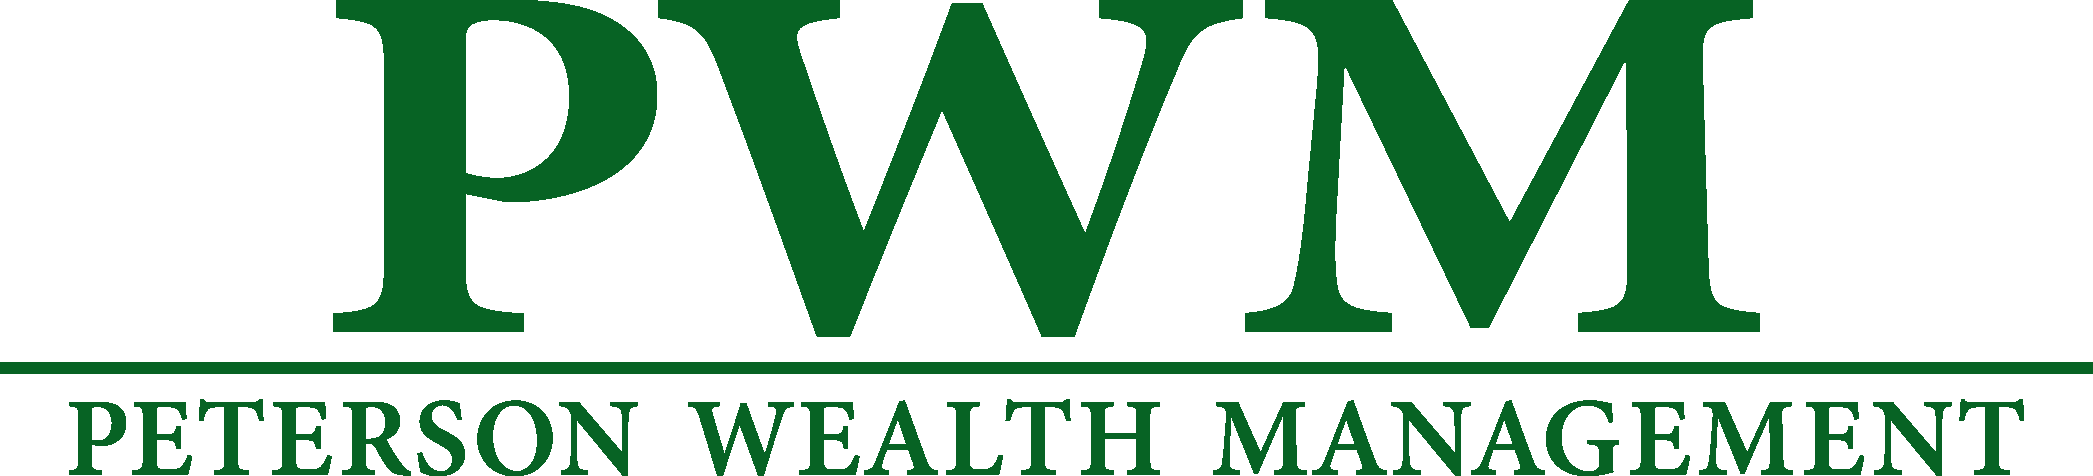 Logo for Peterson Wealth Management